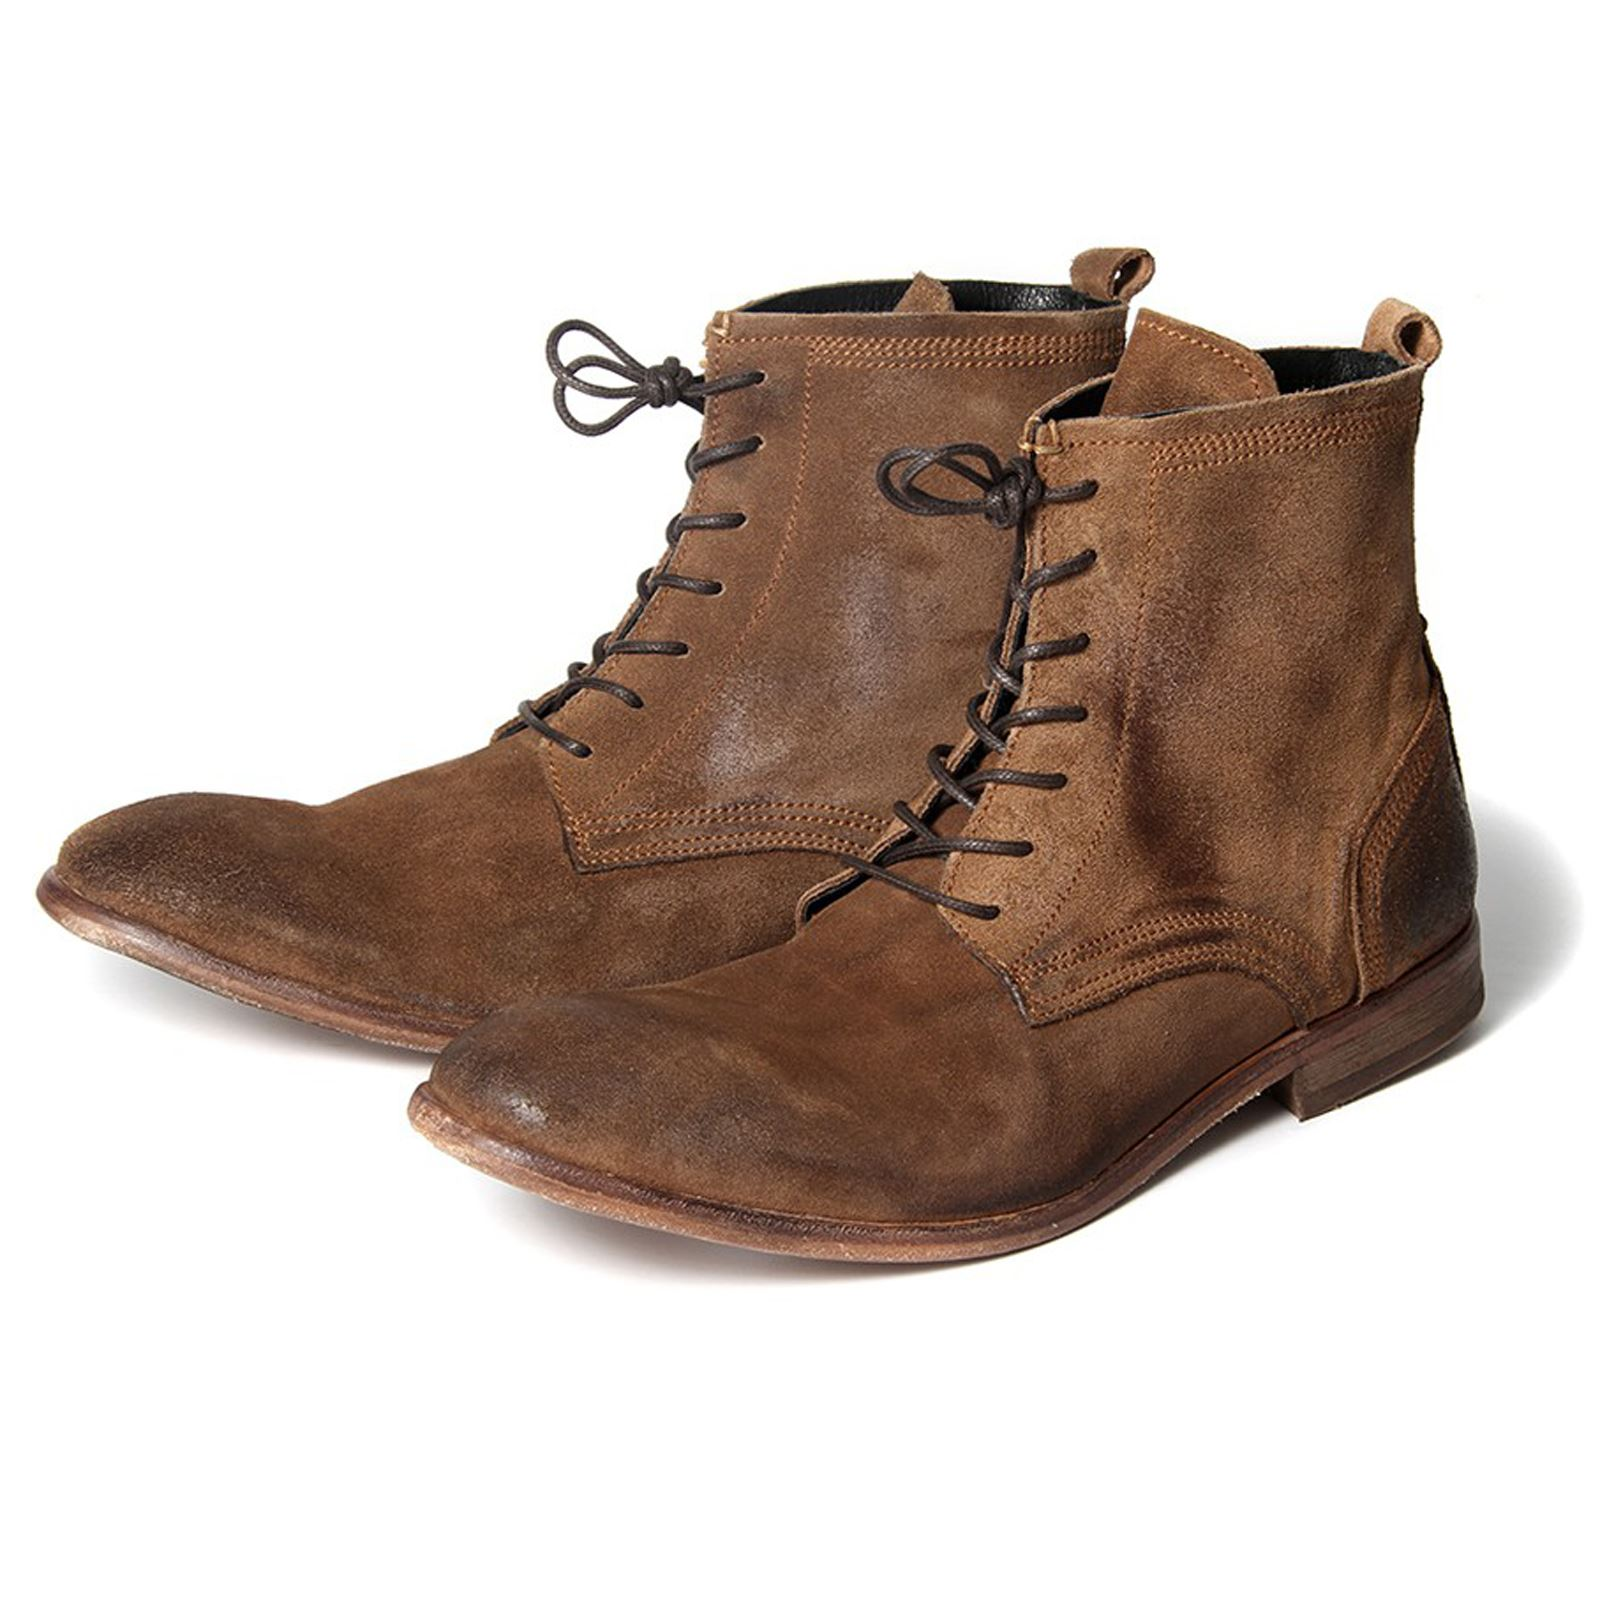 h by hudson boots swathmore suede mens boot ebay